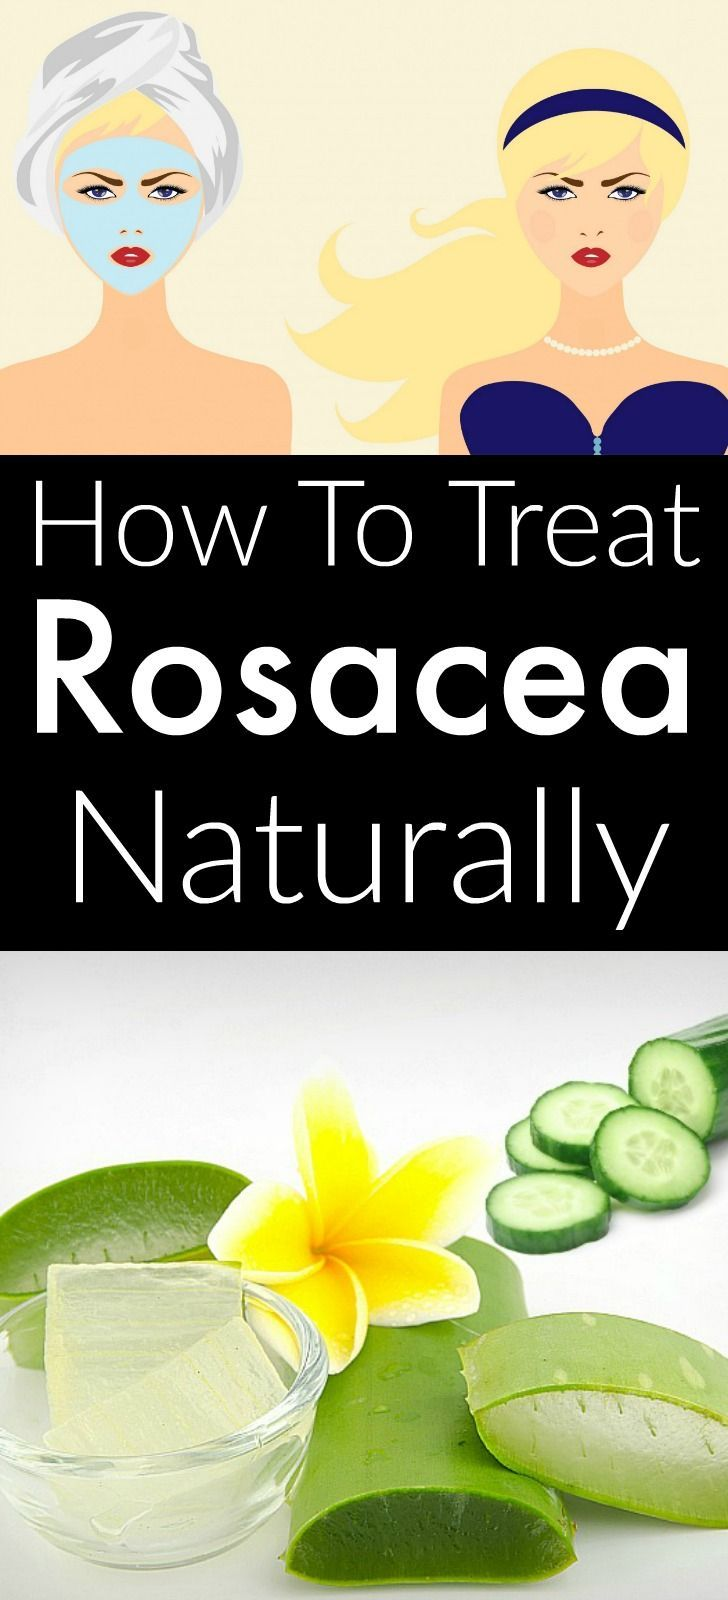 How To Treat Rosacea Naturally? 8 Easy Solutions